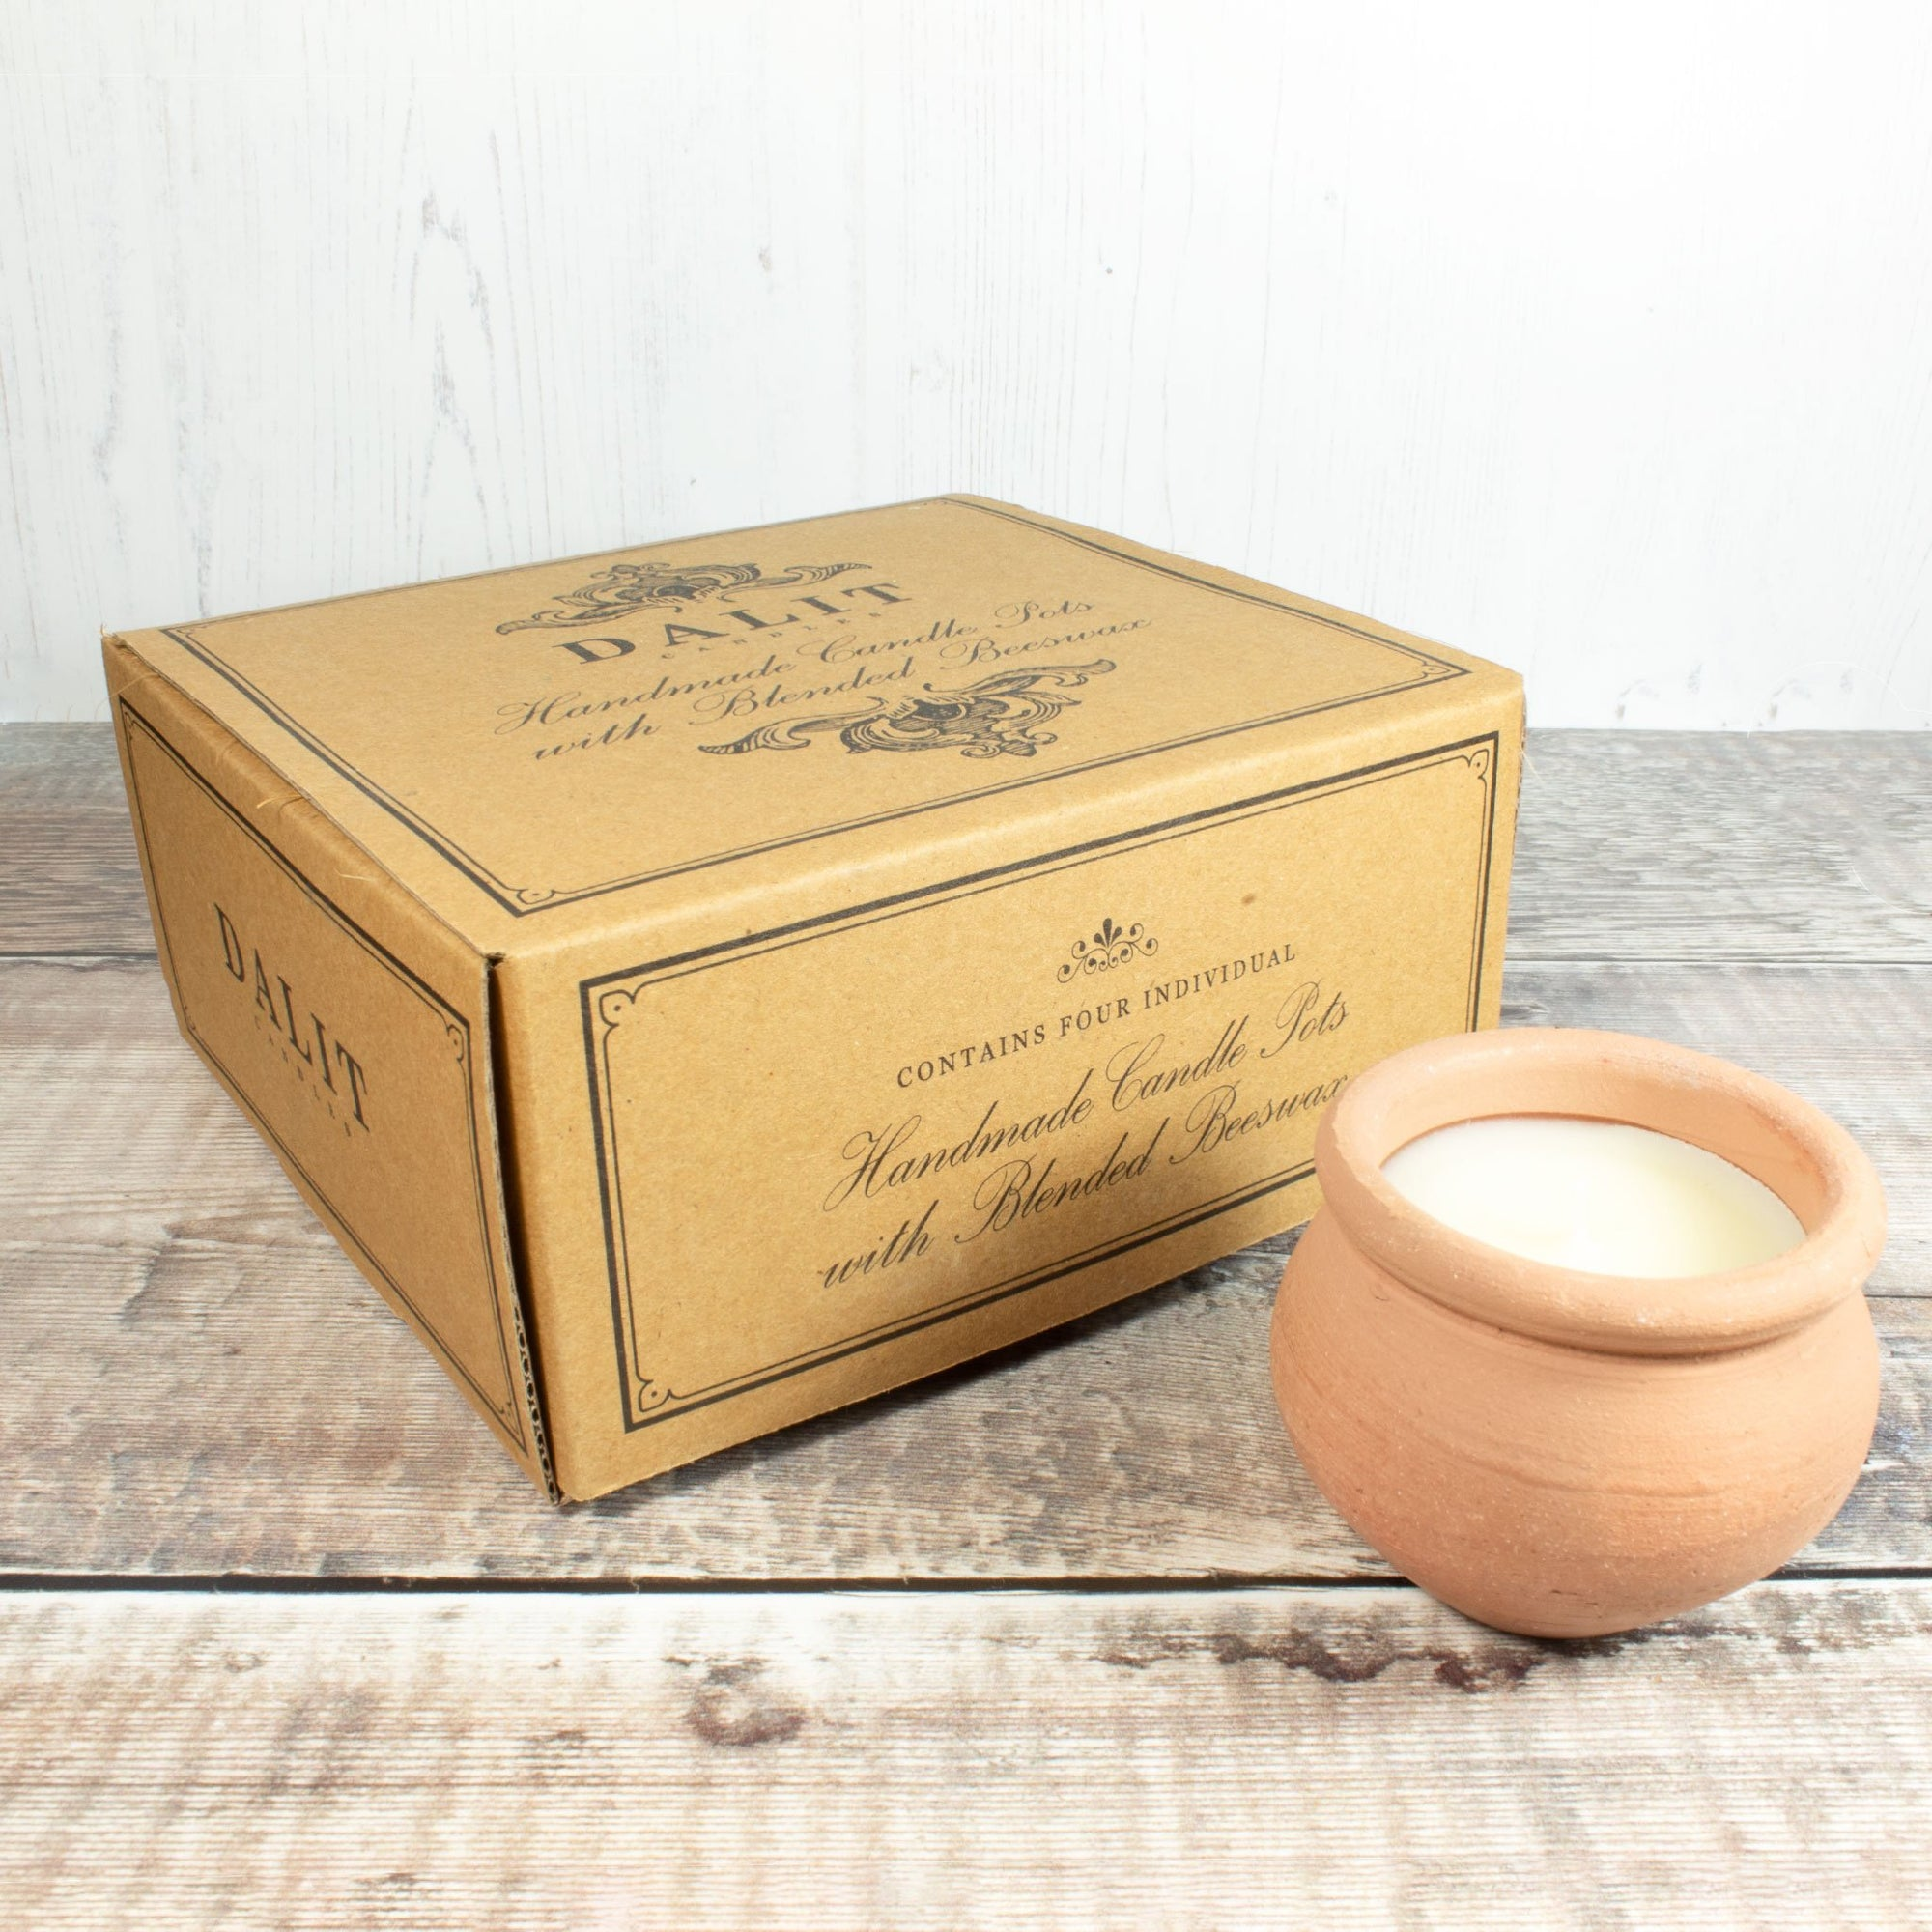 Murgan Candles - Lavender Scent, Box Of 4 | Candle - The Naughty Shrew